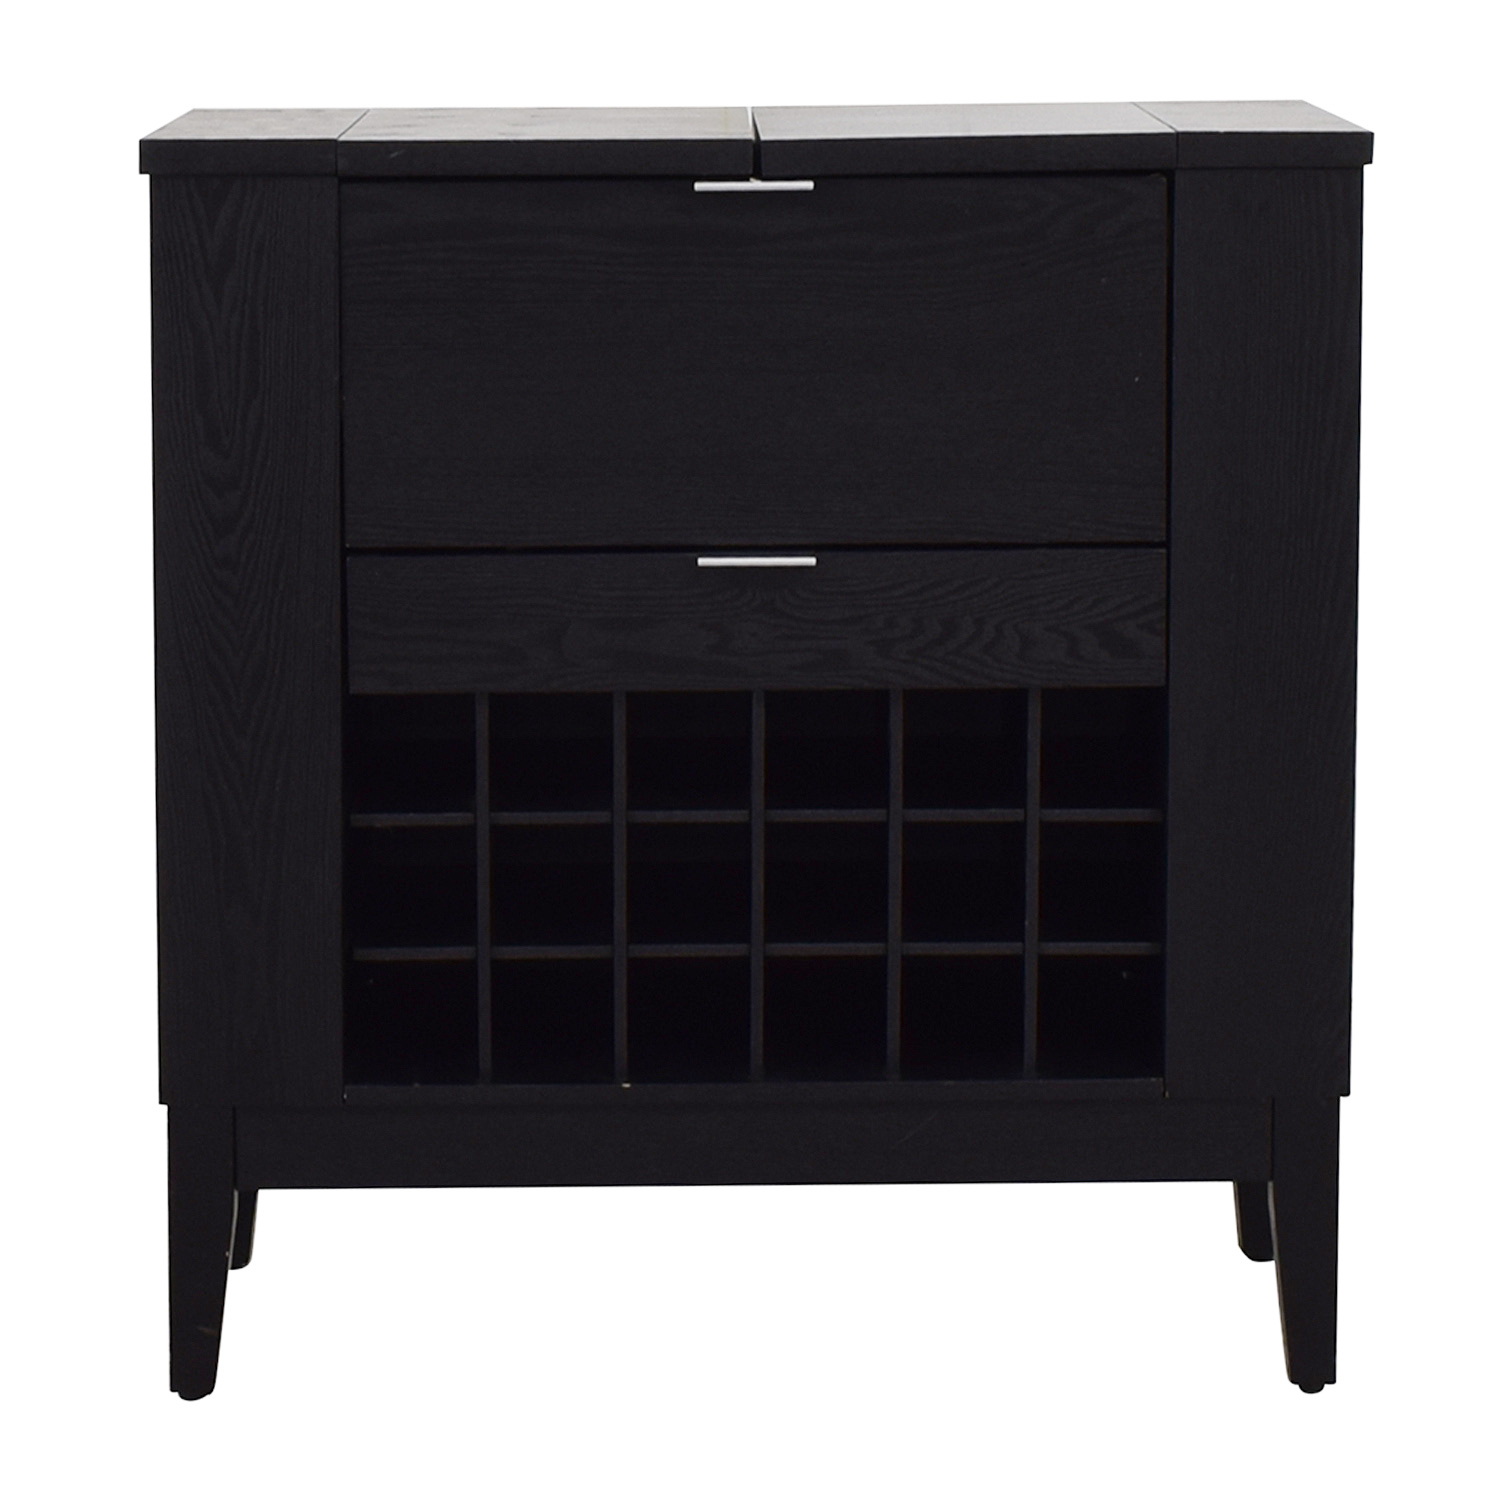 buy Crate & Barrel Parker Spirits Bourbon Cabinet Crate & Barrel